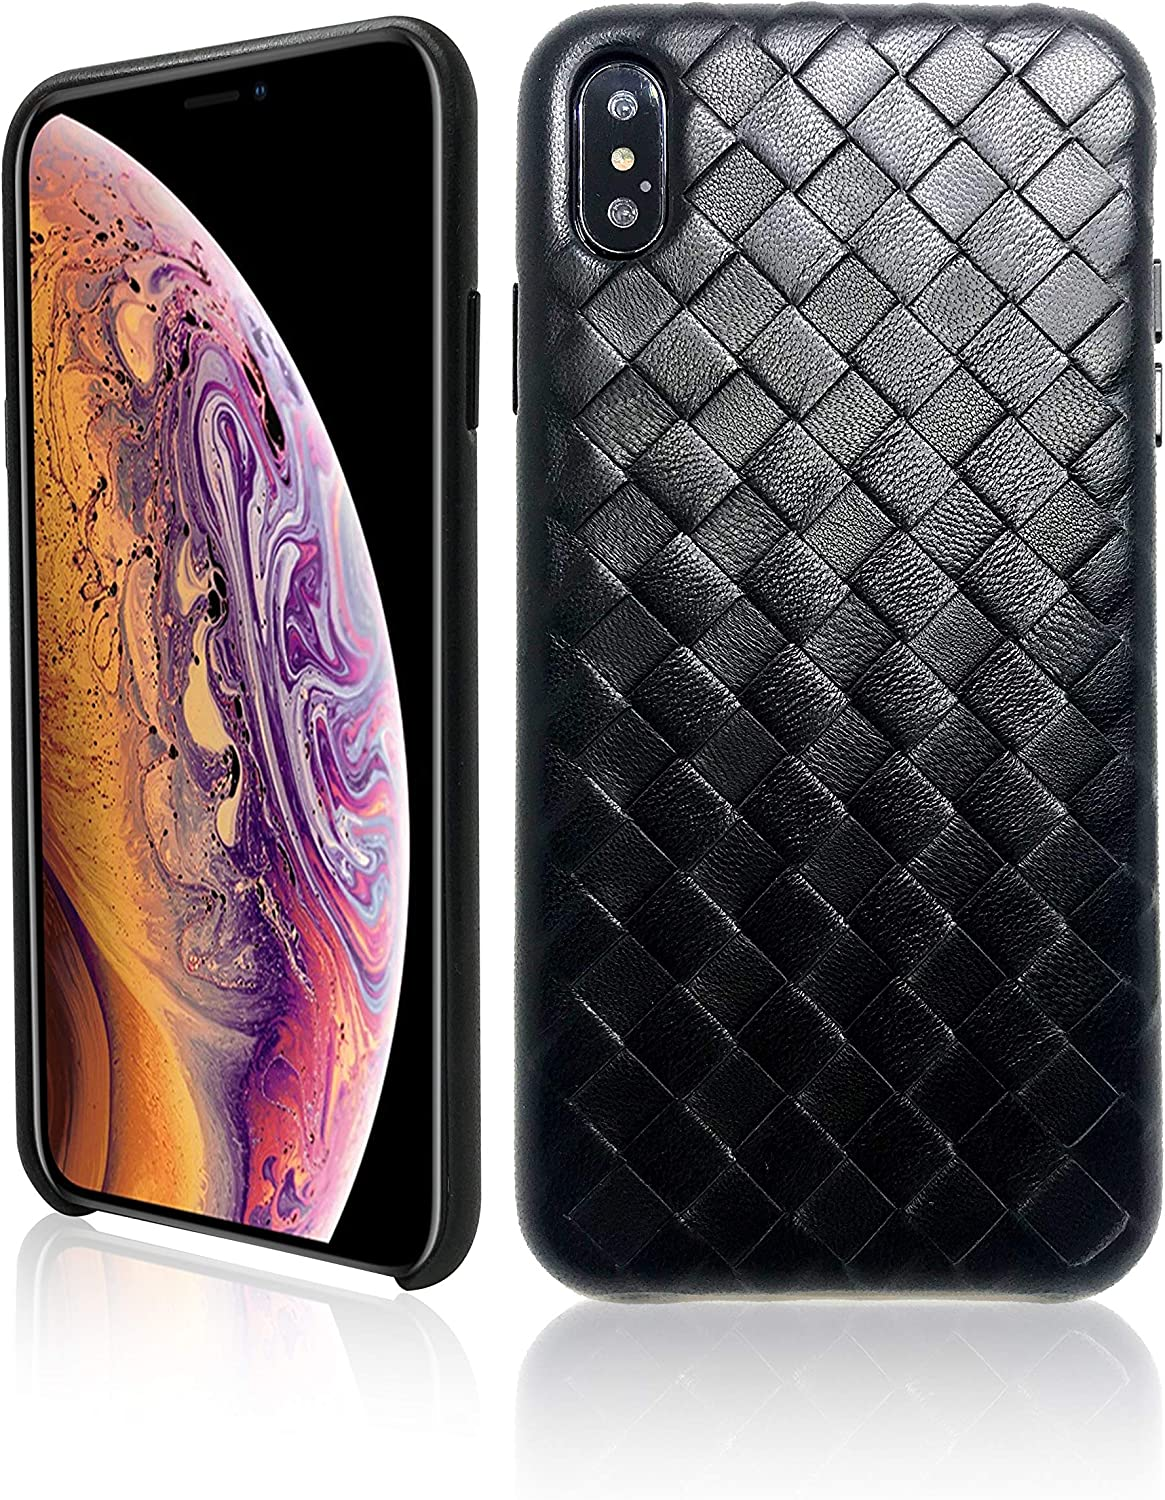 Premium Genuine Leather Case for iPhone Xs Max 6.5 Inch Hand Made from Soft Lambskin Leather Full Body Protection Bumper Leather Case Compatible iPhone Xs Max (Soft Lambskin Edition) (Black Lambskin)